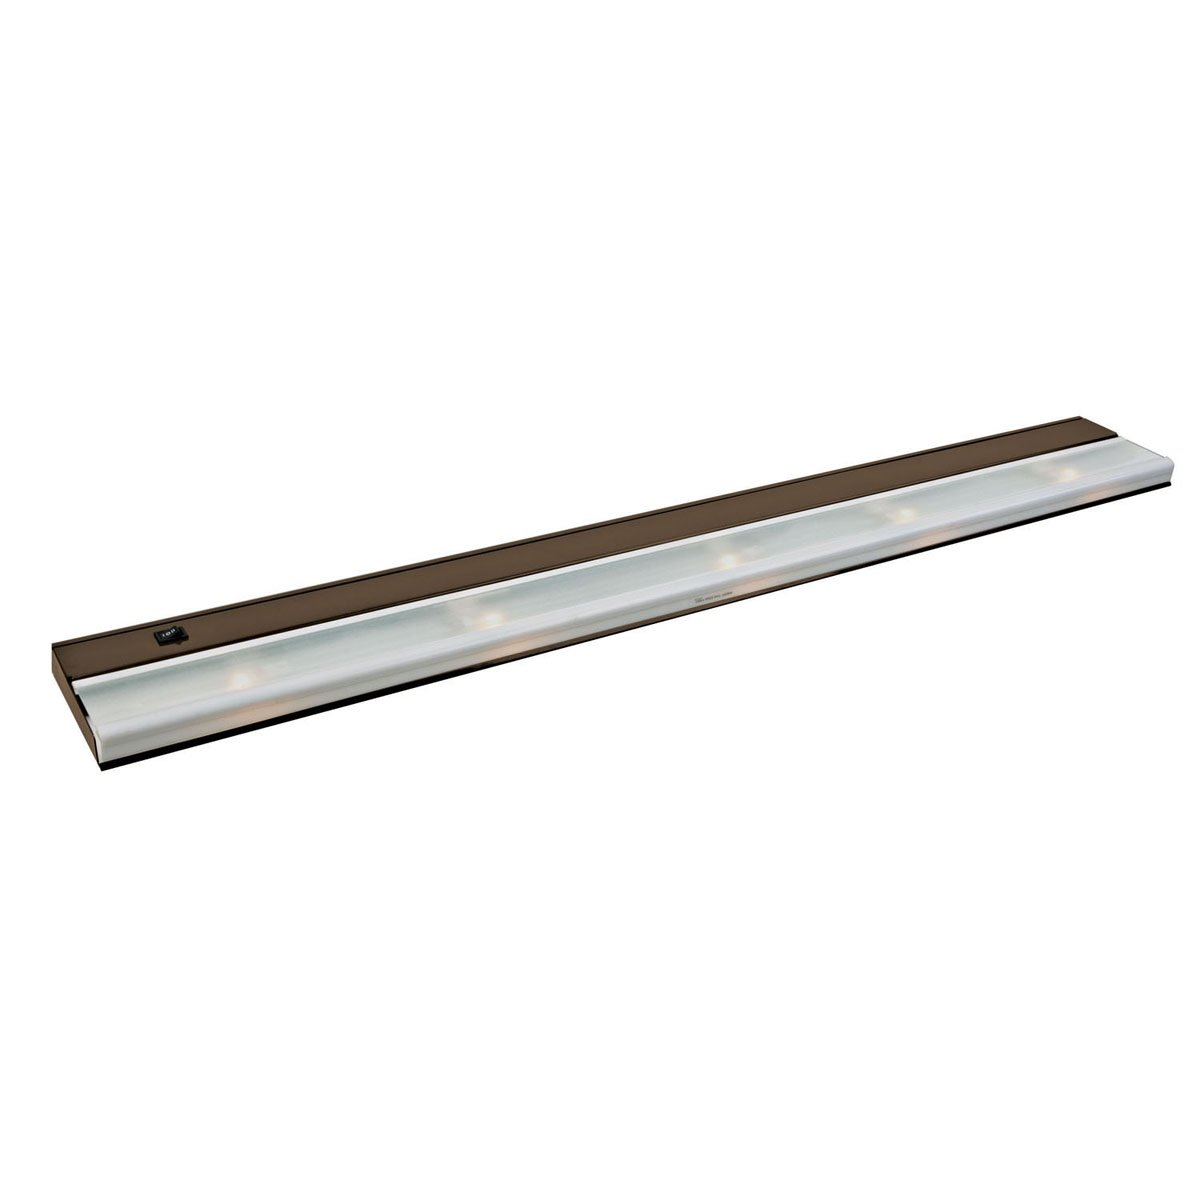 10595BZ TaskWork Direct Wire 40IN 5LT 12V Xenon Undercabinet Light, Bronze Finish with Frosted Glass Diffuser